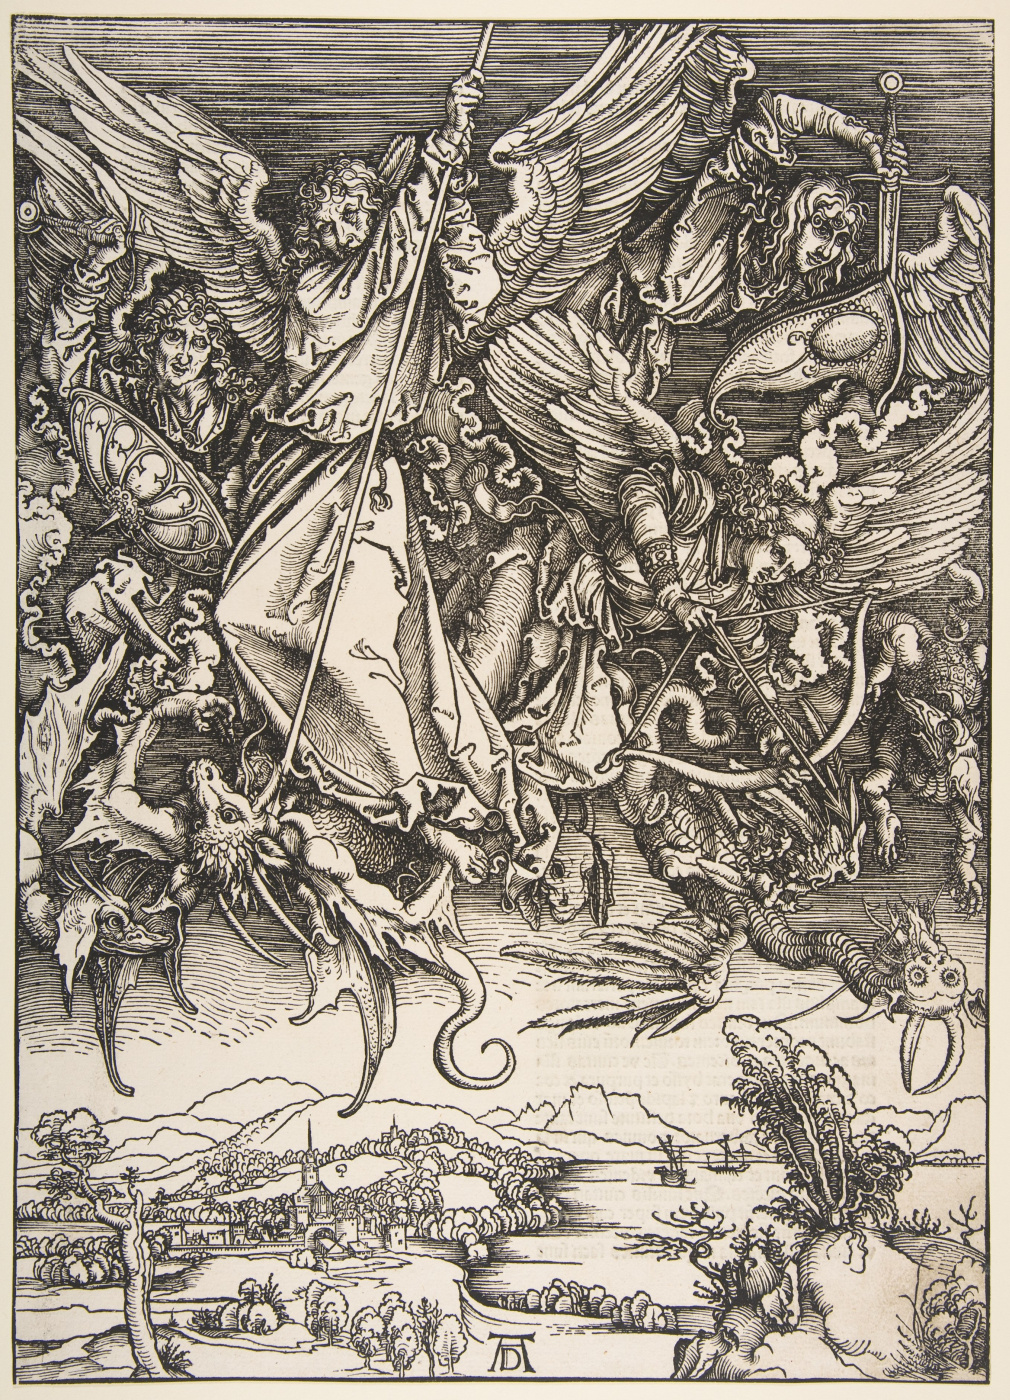 Albrecht Durer. The battle of Archangel Michael with the dragon.From the series the Apocalypse.